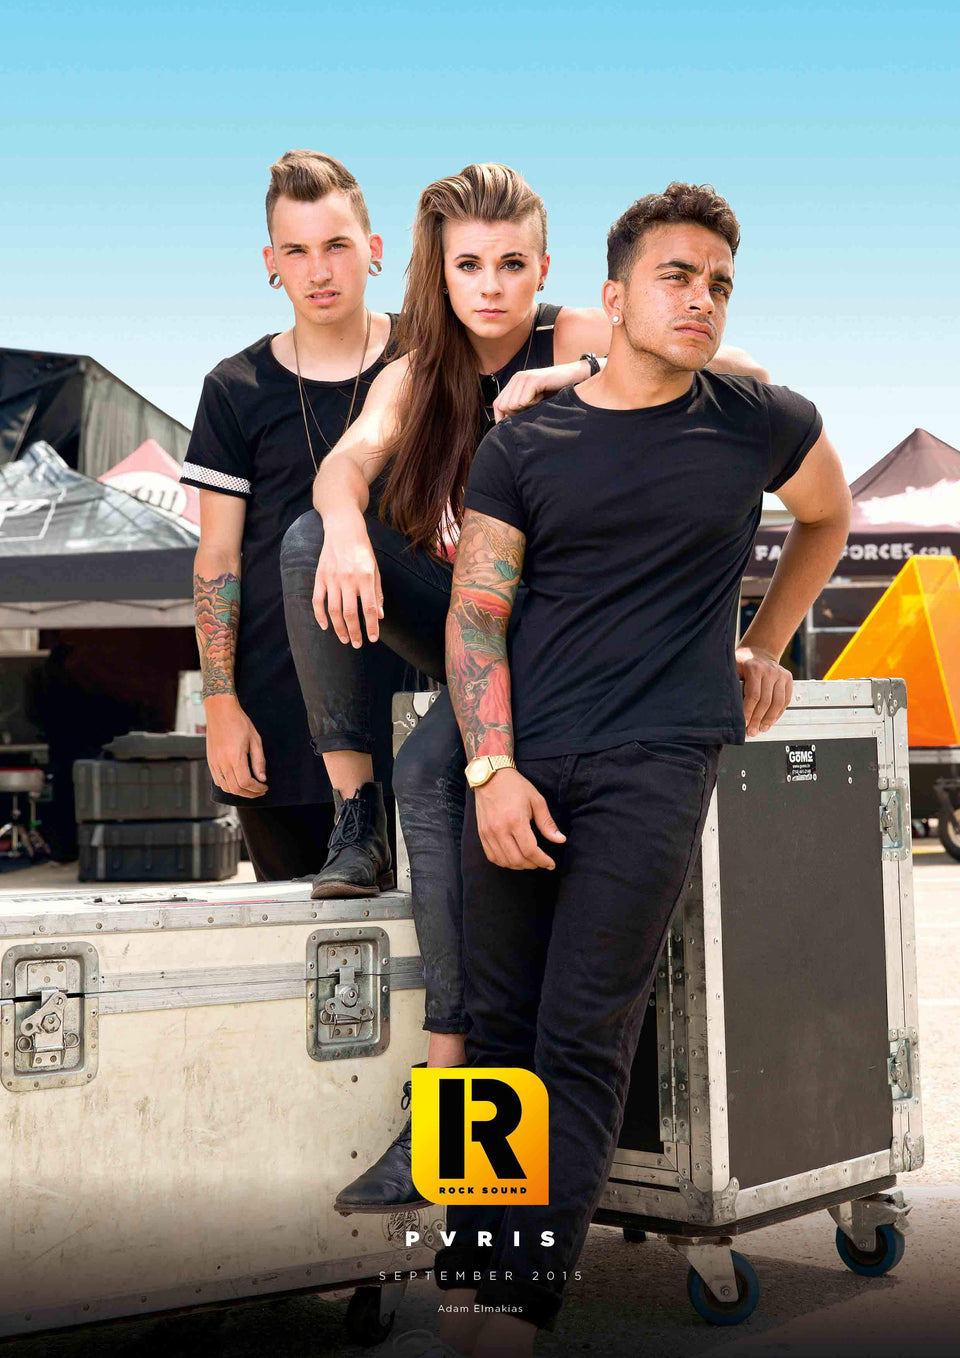 Rock Sound Issue 250.5 - PVRIS